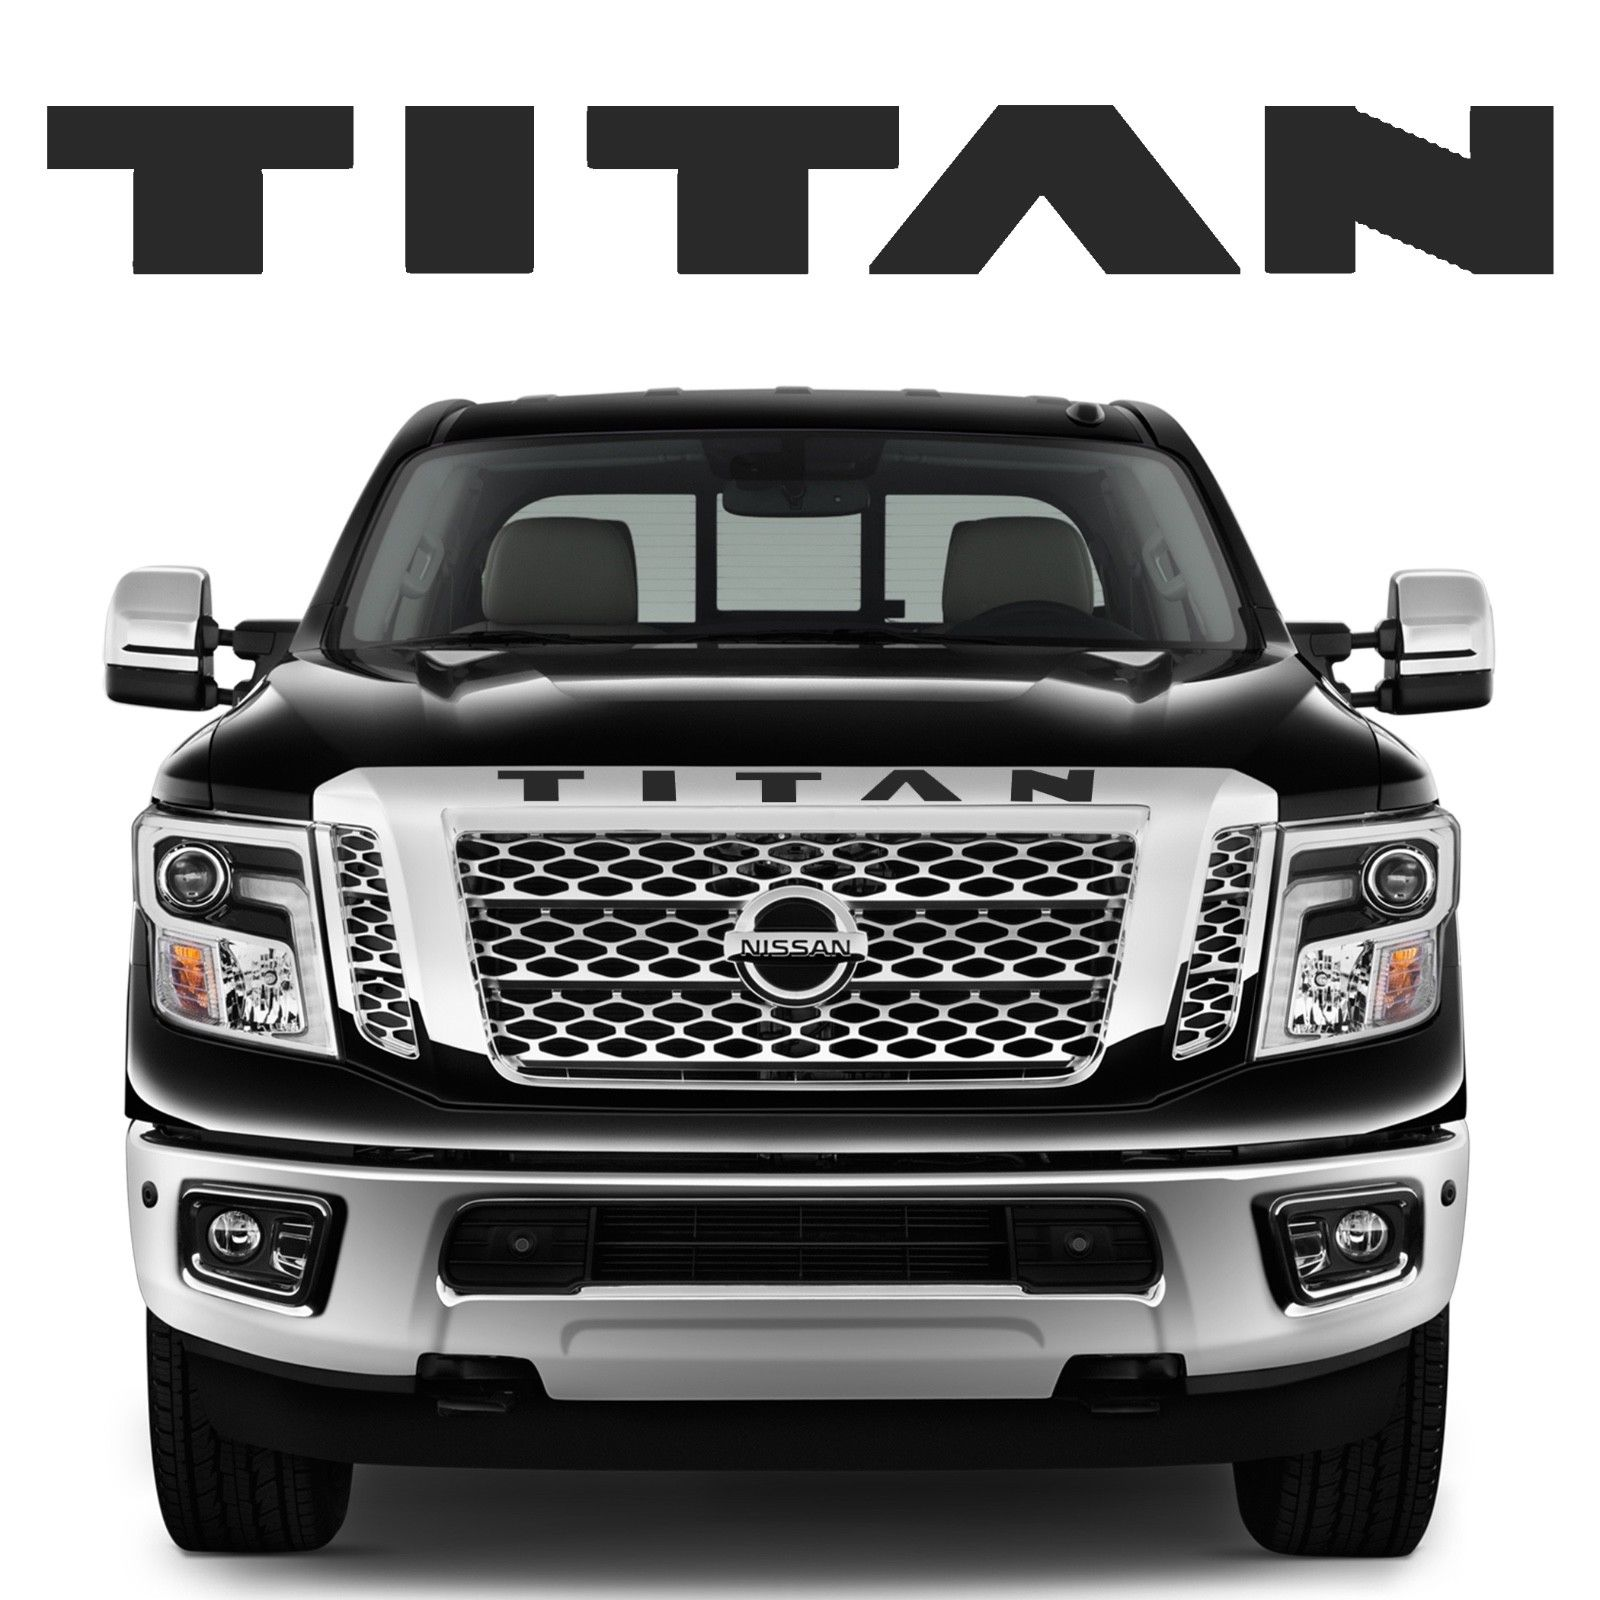 2019 Nissan Titan: Awesome Matte Black Front Grill Vinyl Decal Inlays For